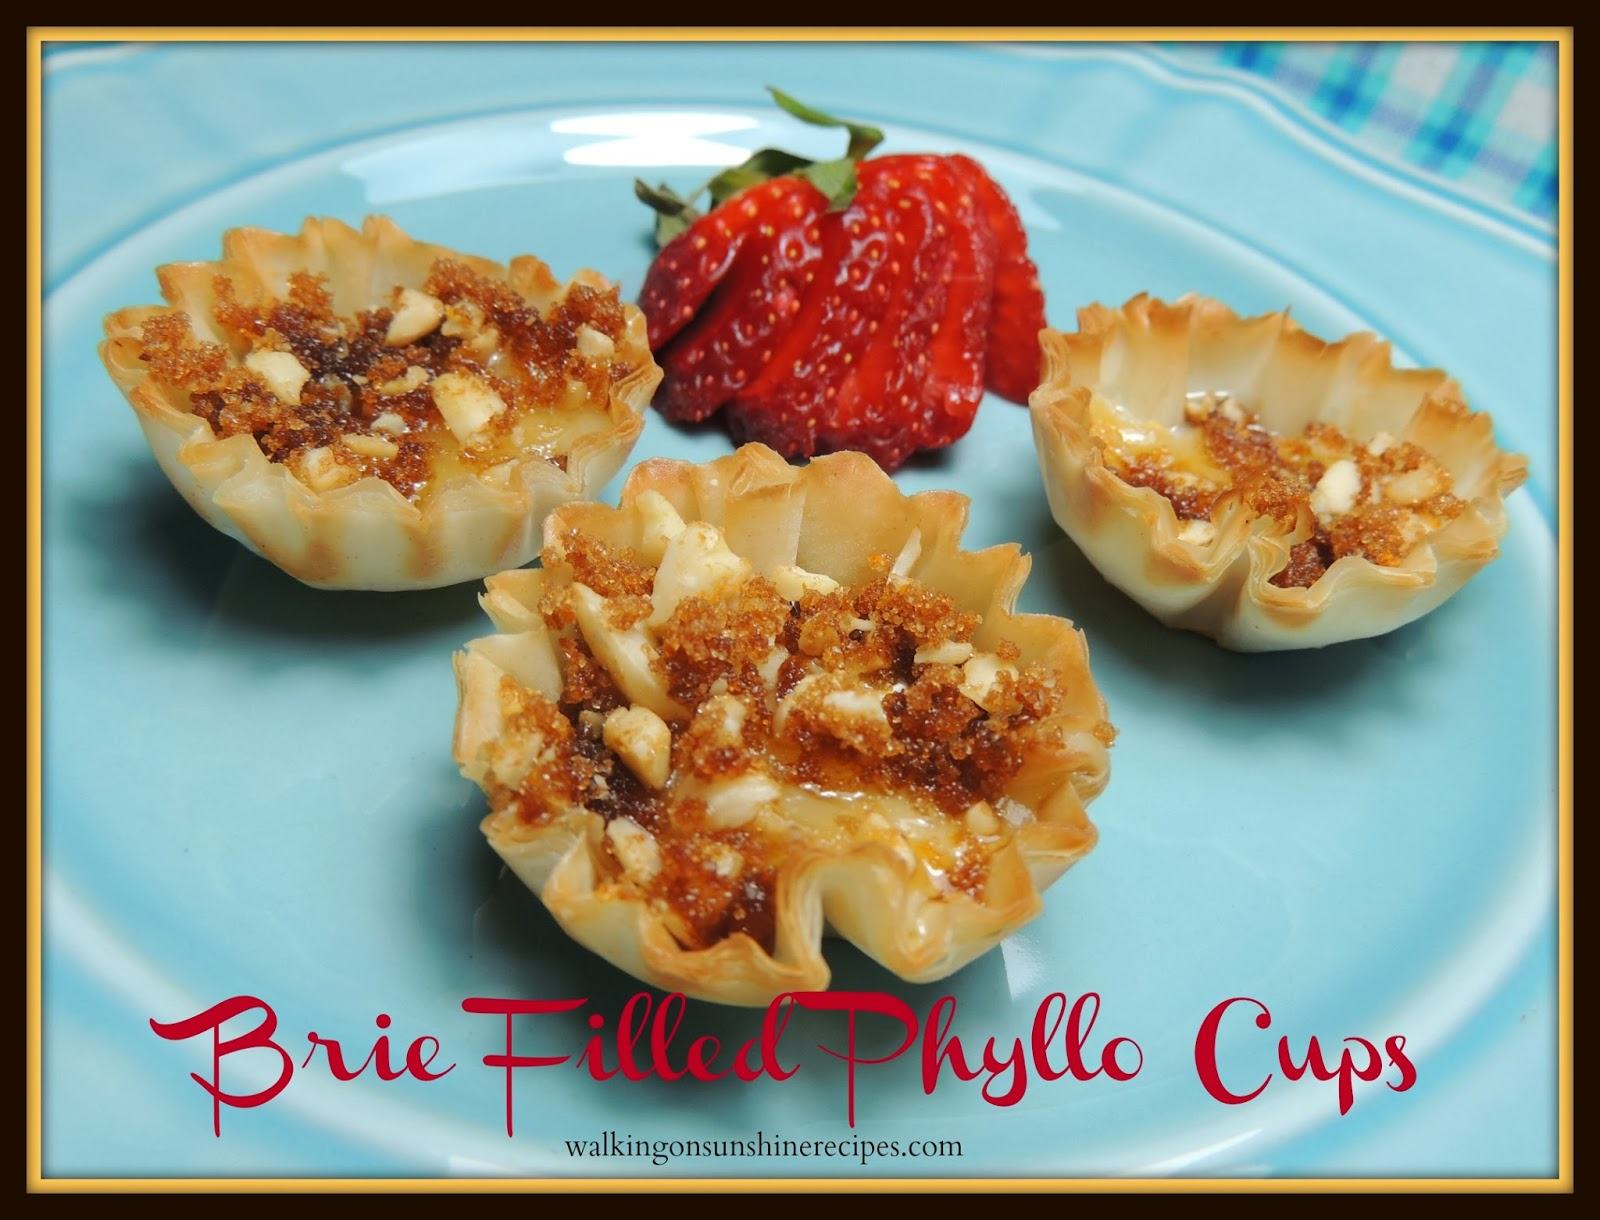 Brie Filled Pastry Cups